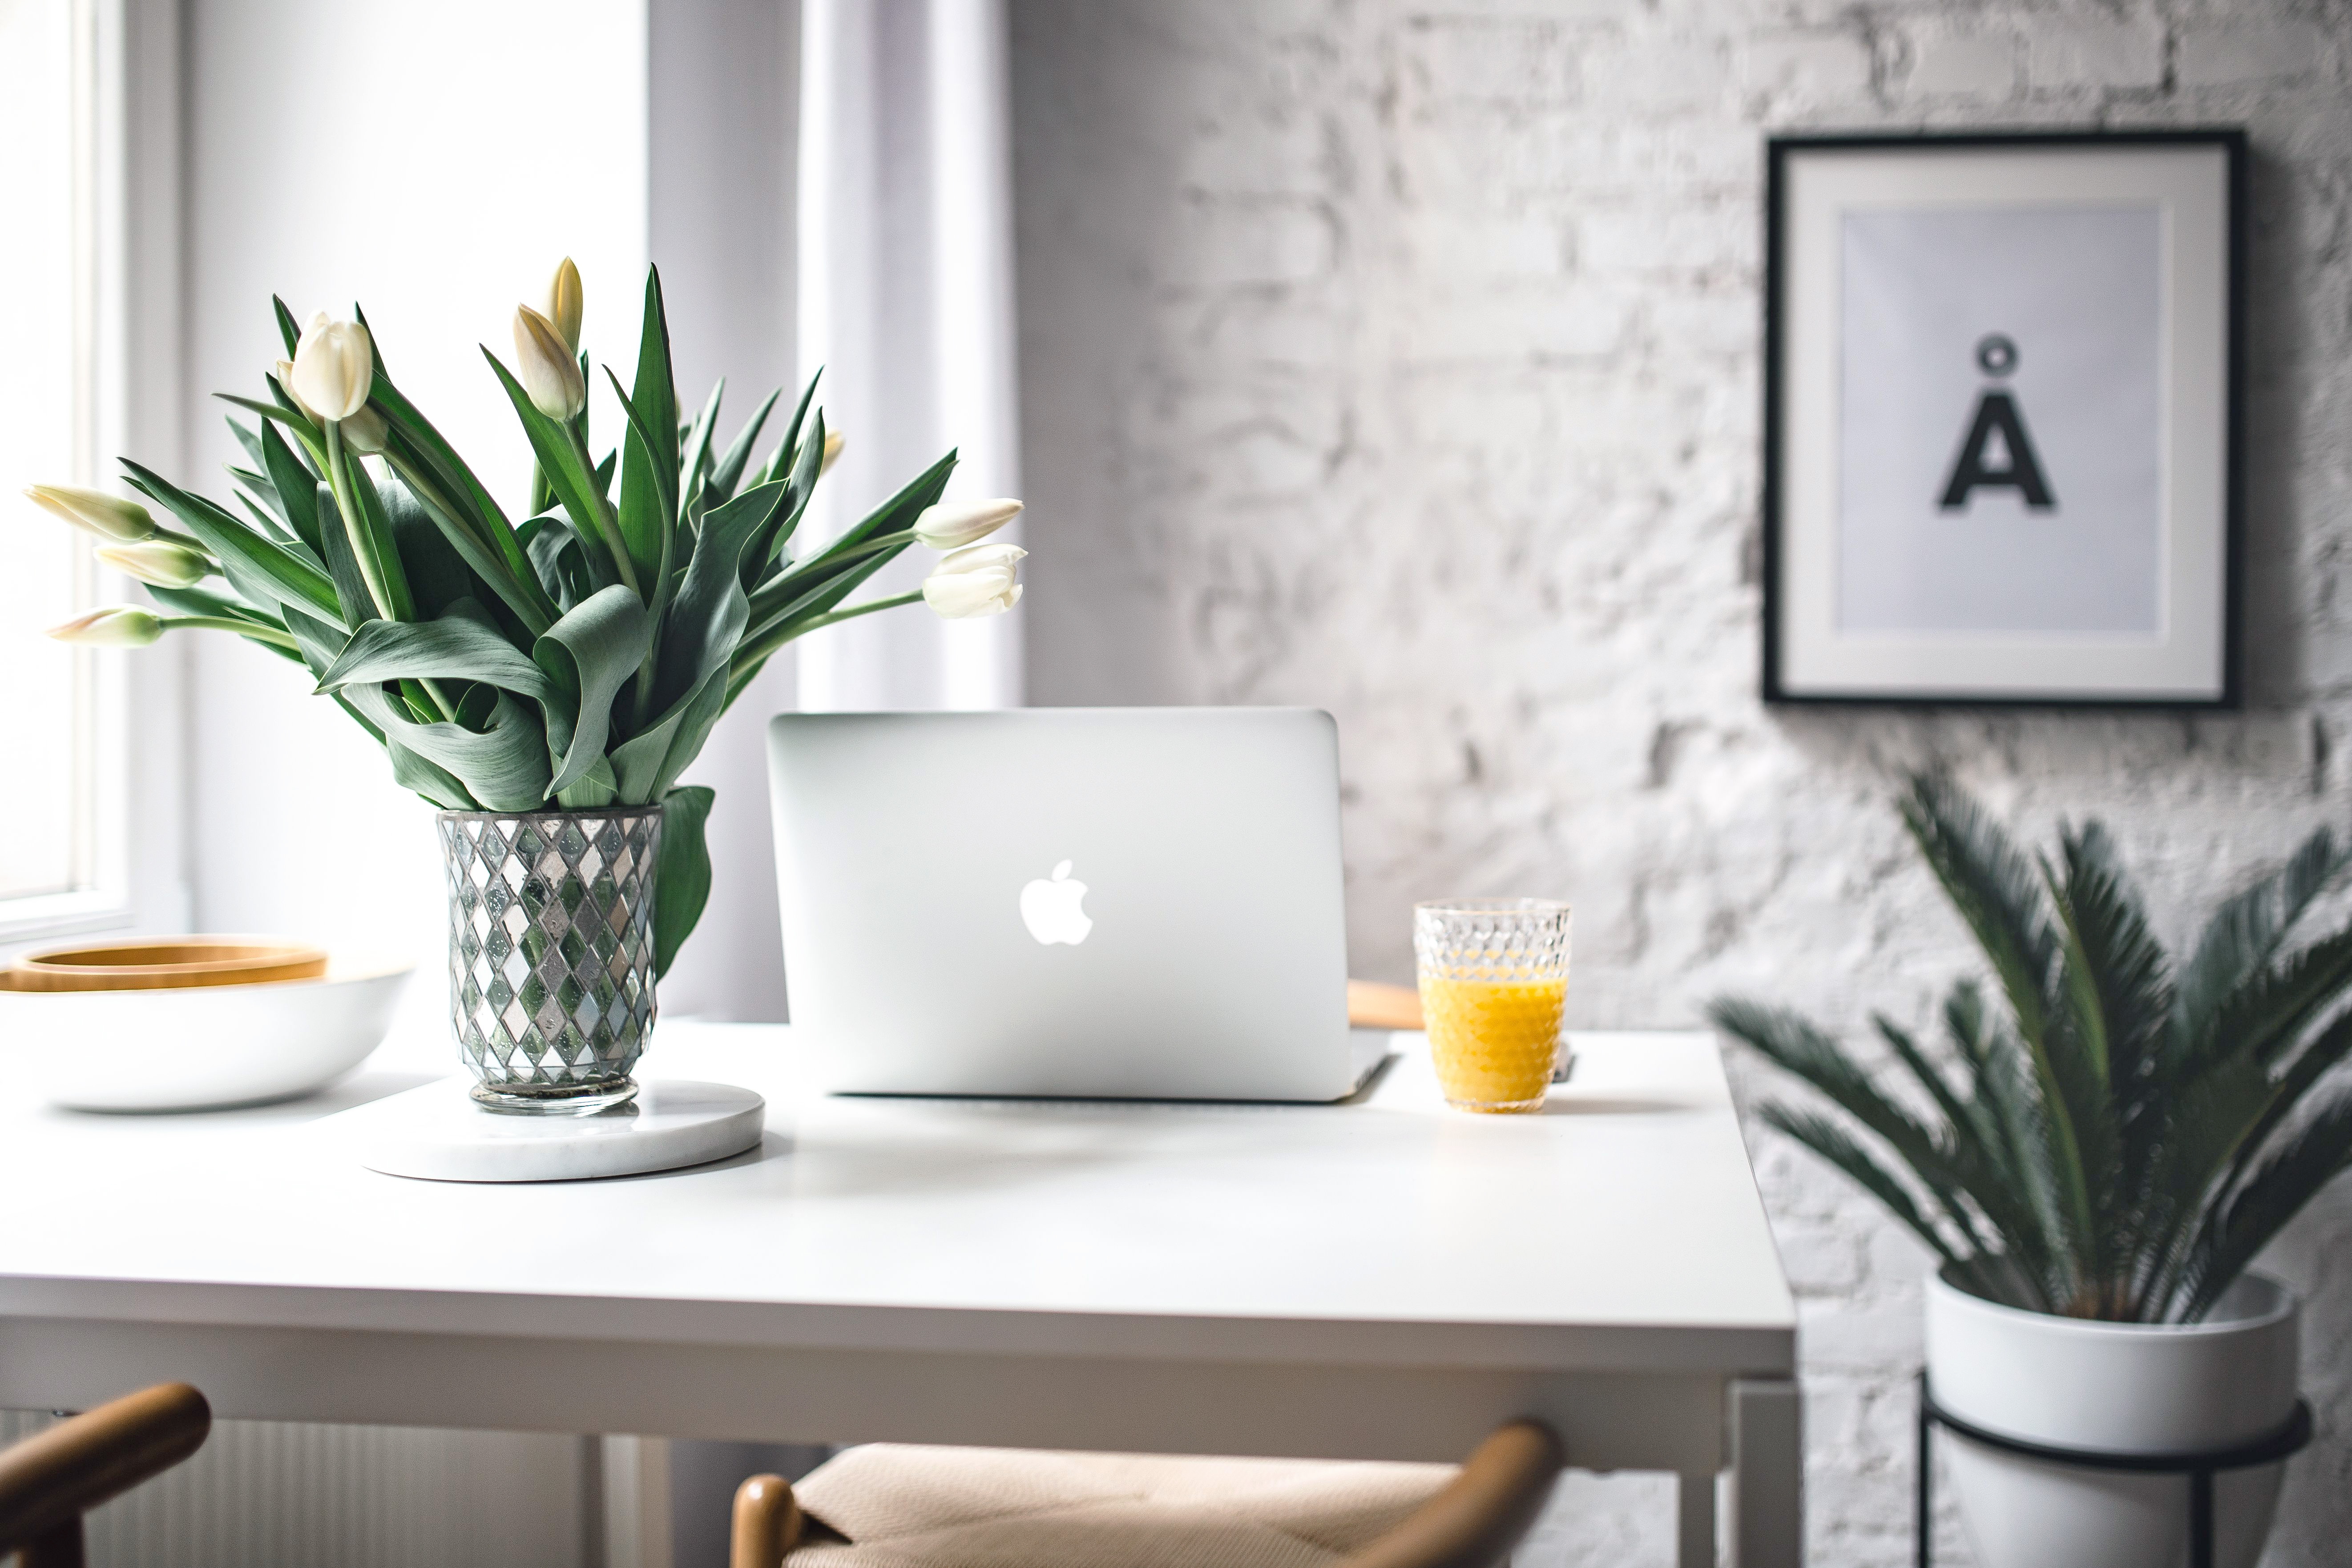 Creating an office space with desk must-haves